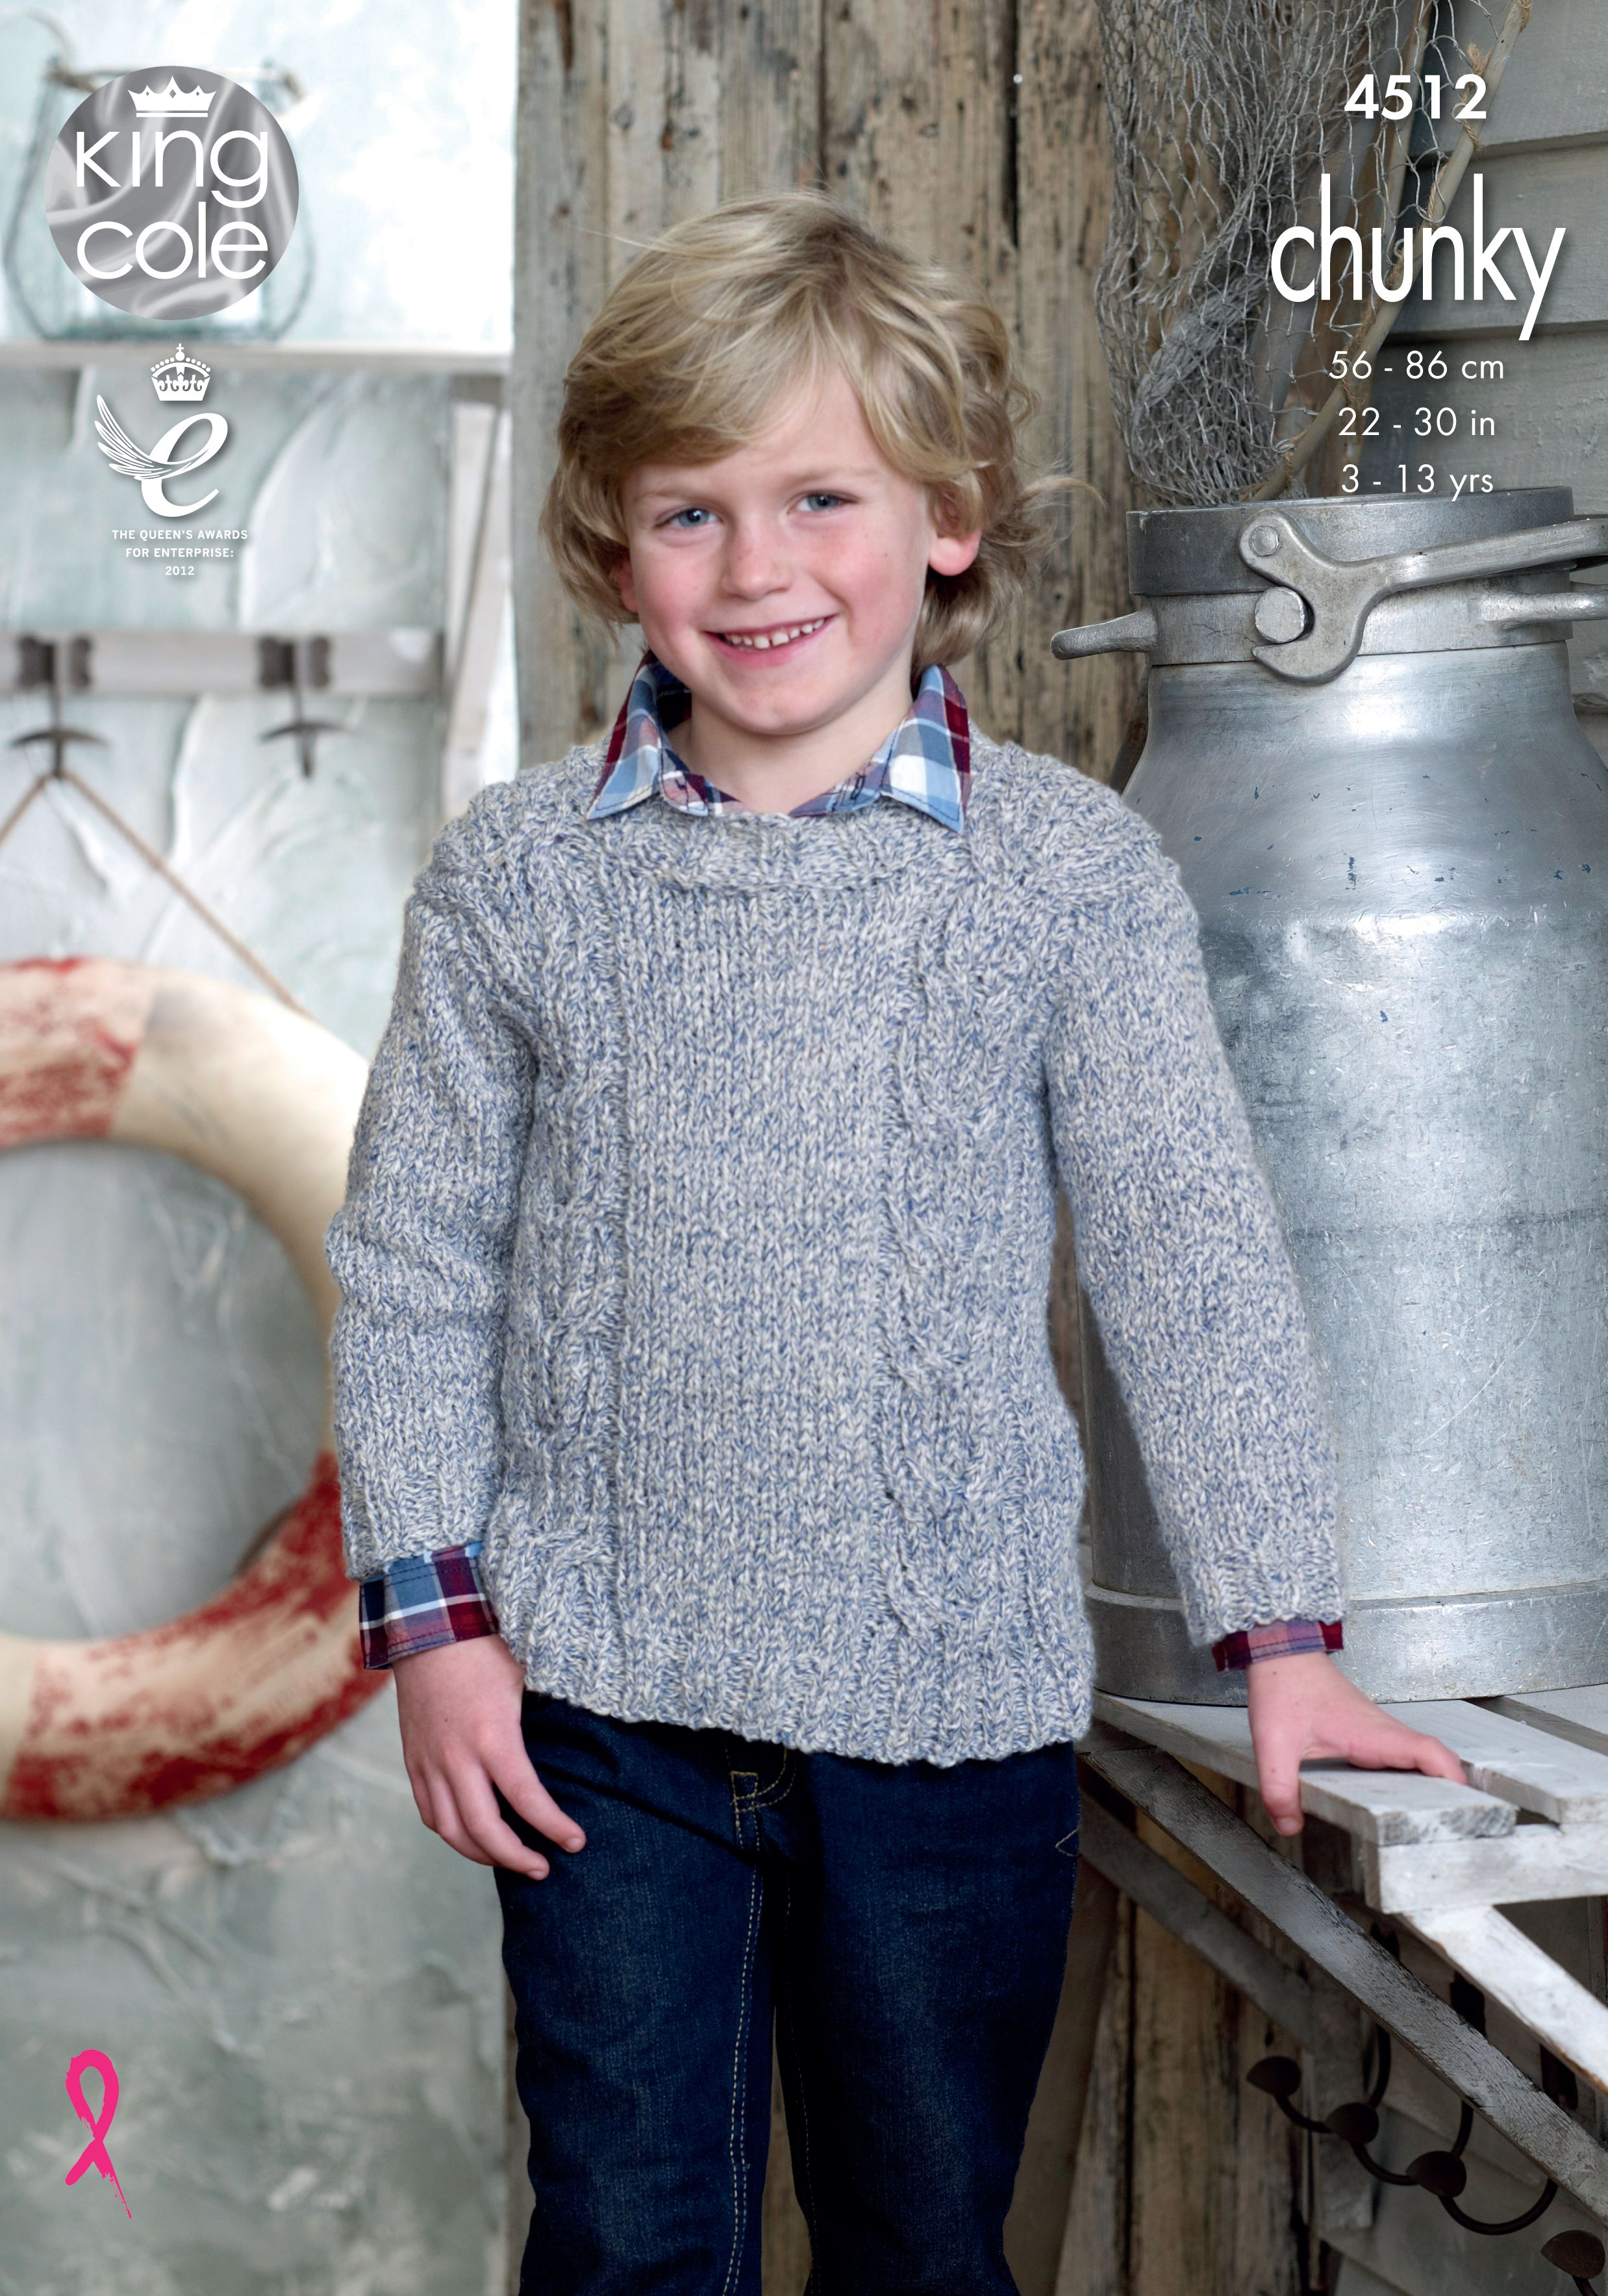 28985f895e16a9 Childrens knitted jumper pattern. Authentic chunky soft marl shade - King  Cole